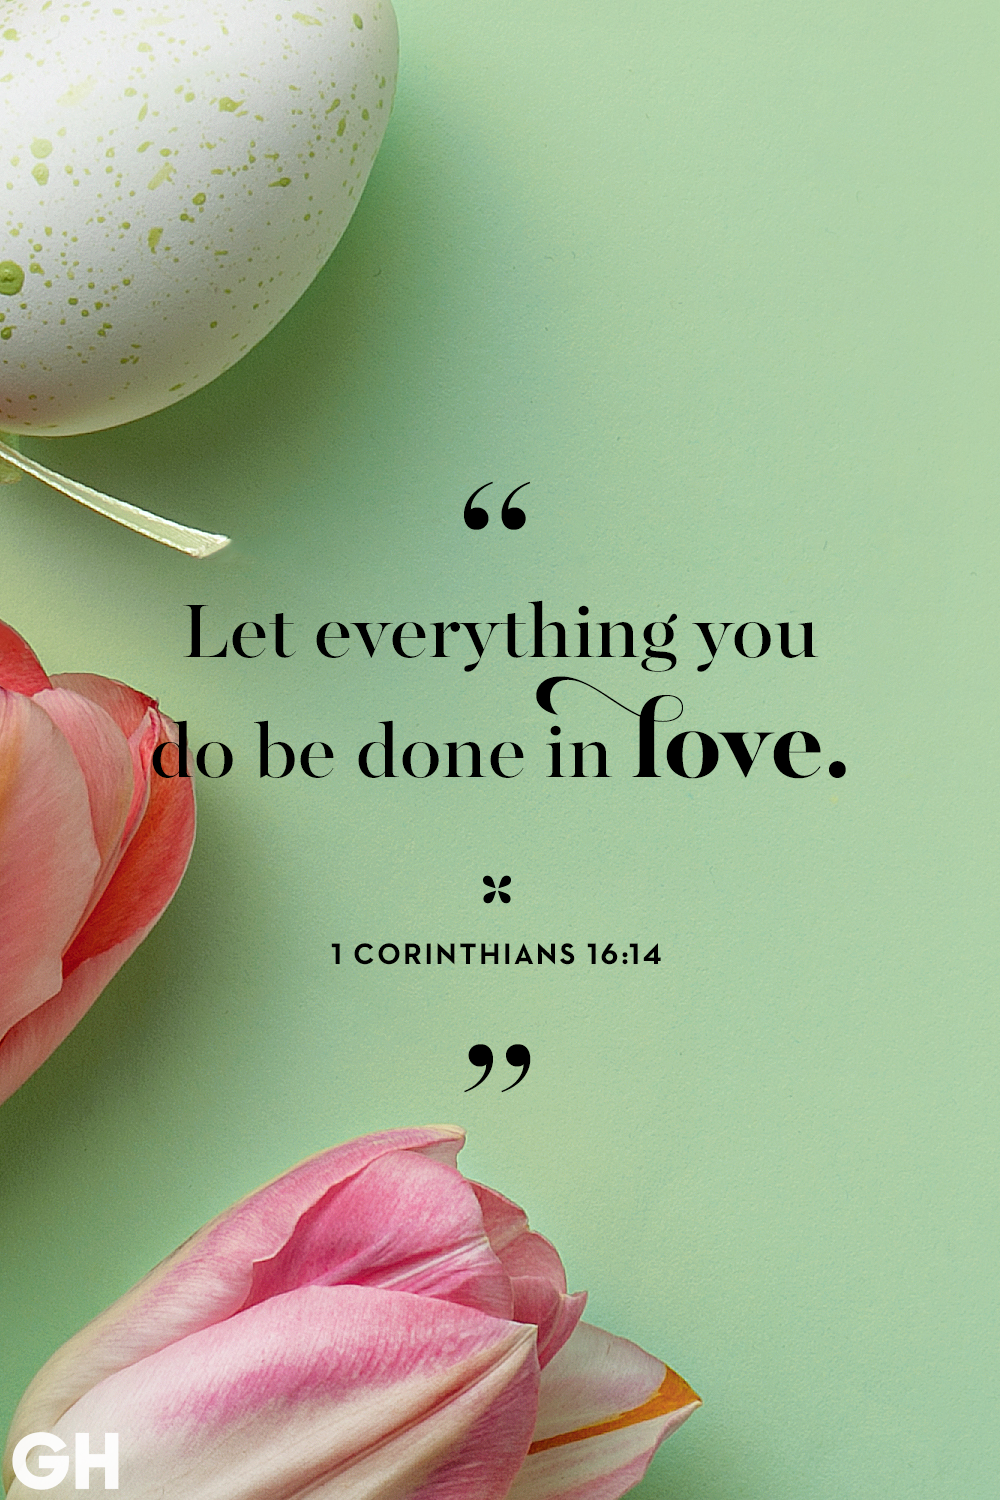 Easter Quotes 1 Corinthians 16:14 Everything Done in Love